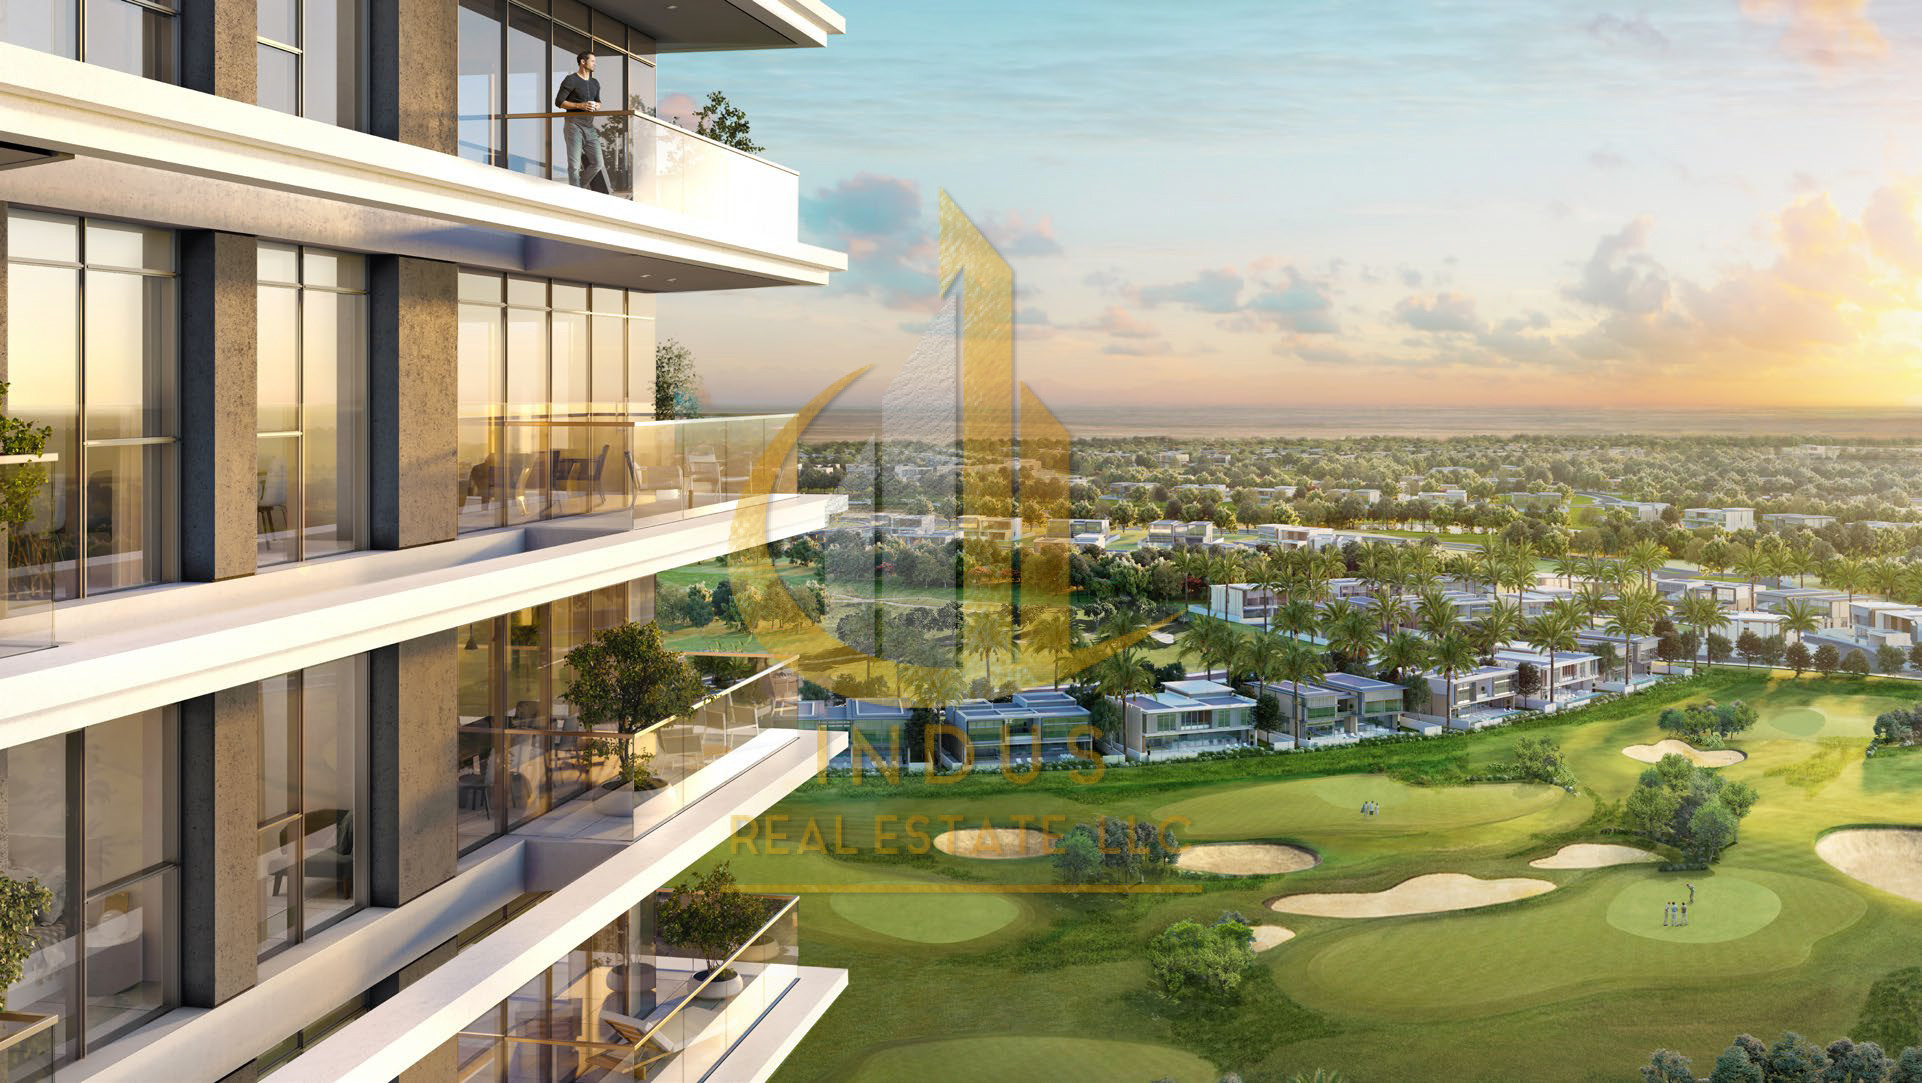 Golf Community Luxury Apartment|60/40 Payment Plan